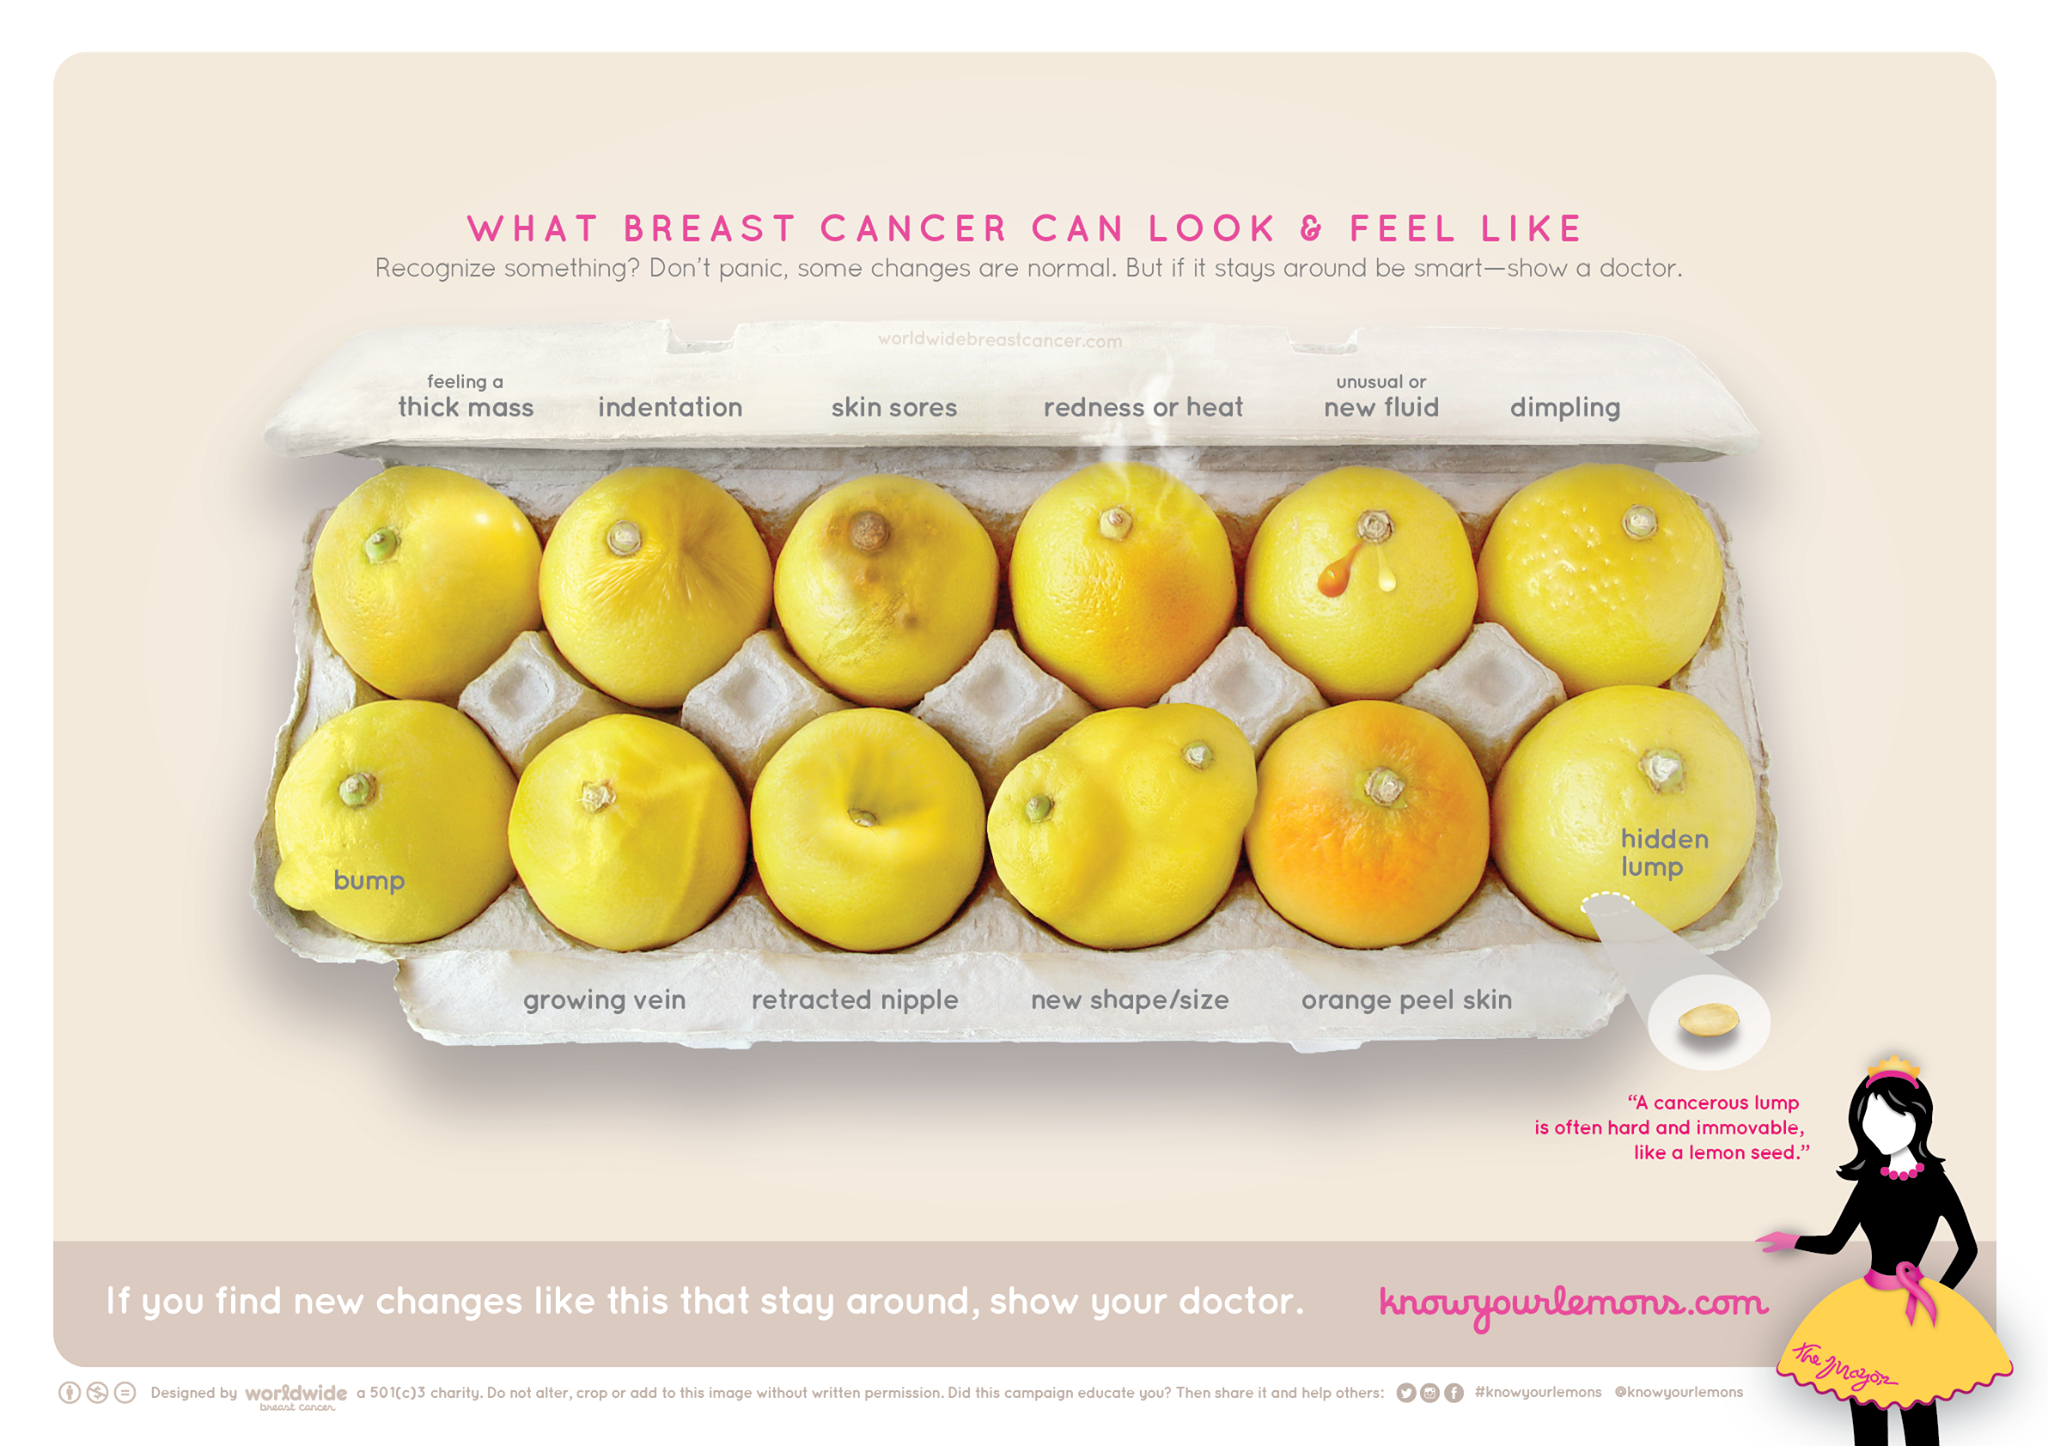 Learn What Breast Cancer Can Look Like With This Cute Image